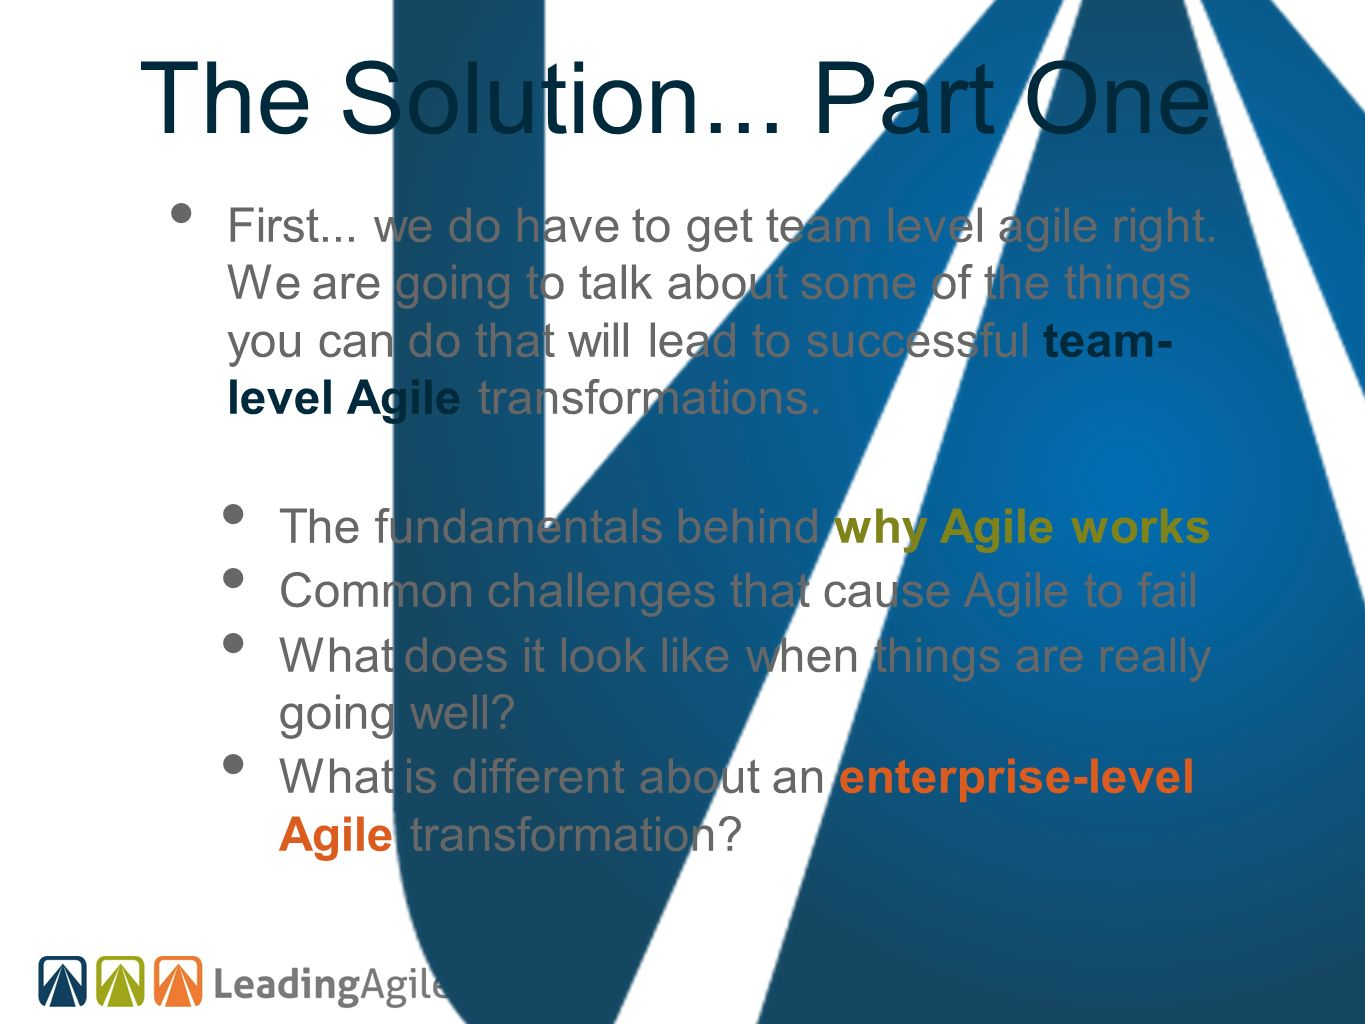 The Solution... Part One First... we do have to get team level agile right. We are going to talk about some of the things you can do that will lead to